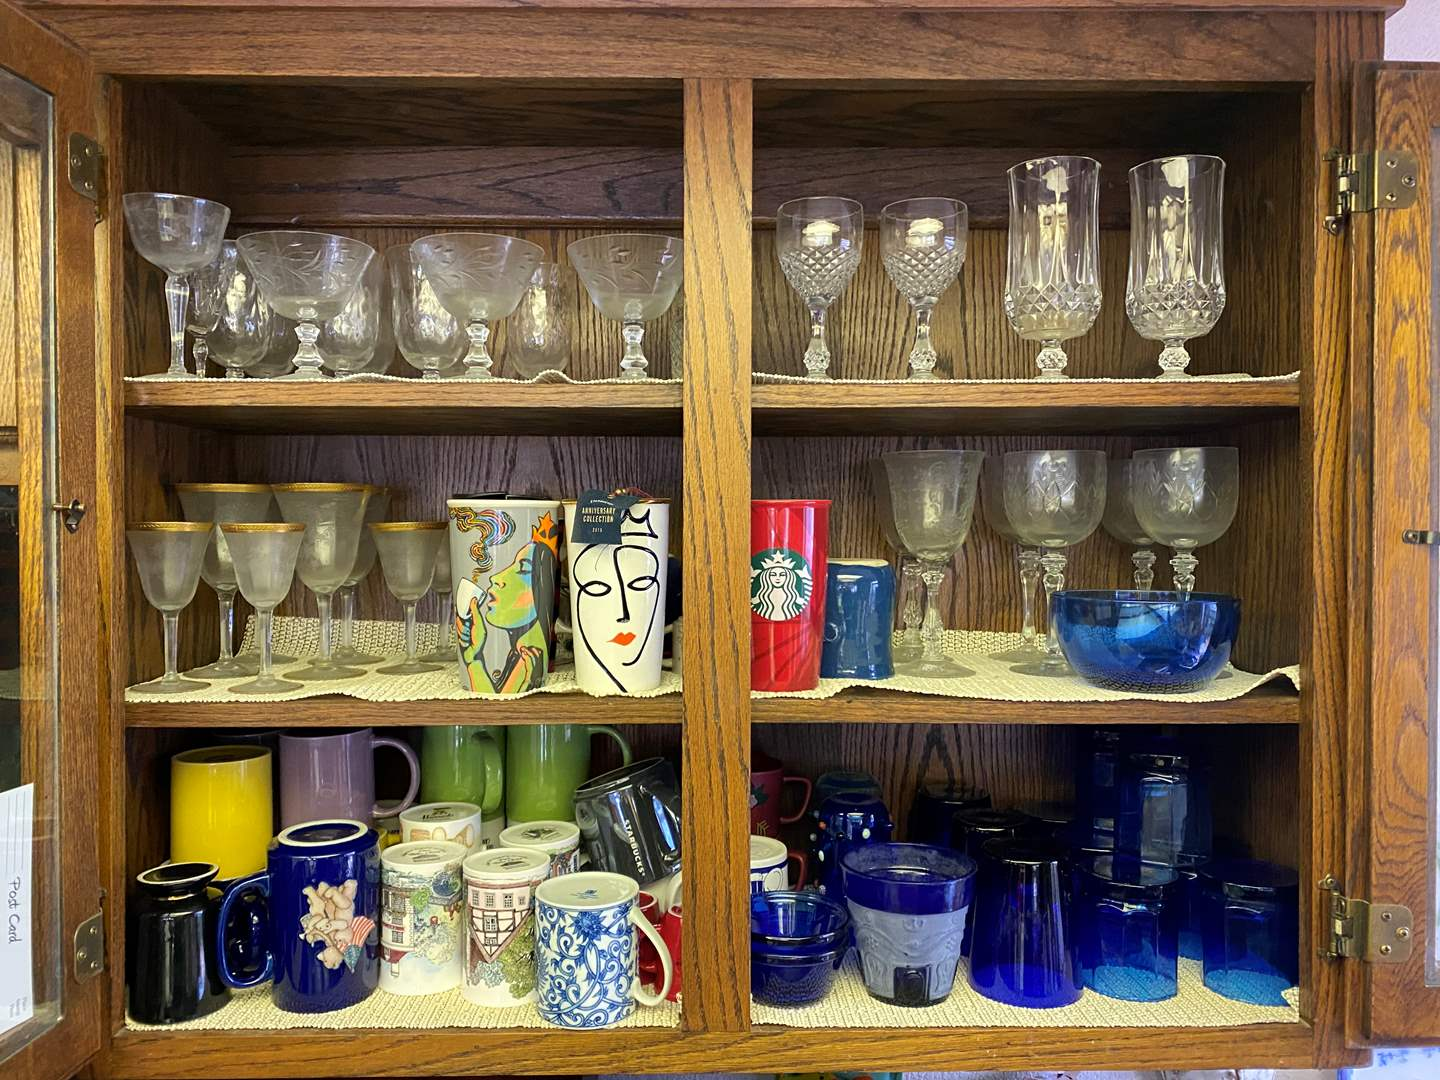 Lot # 641 - Kitchen Cupboard Goods, Including Starbucks Mug Collection & Antique Stemware (main image)